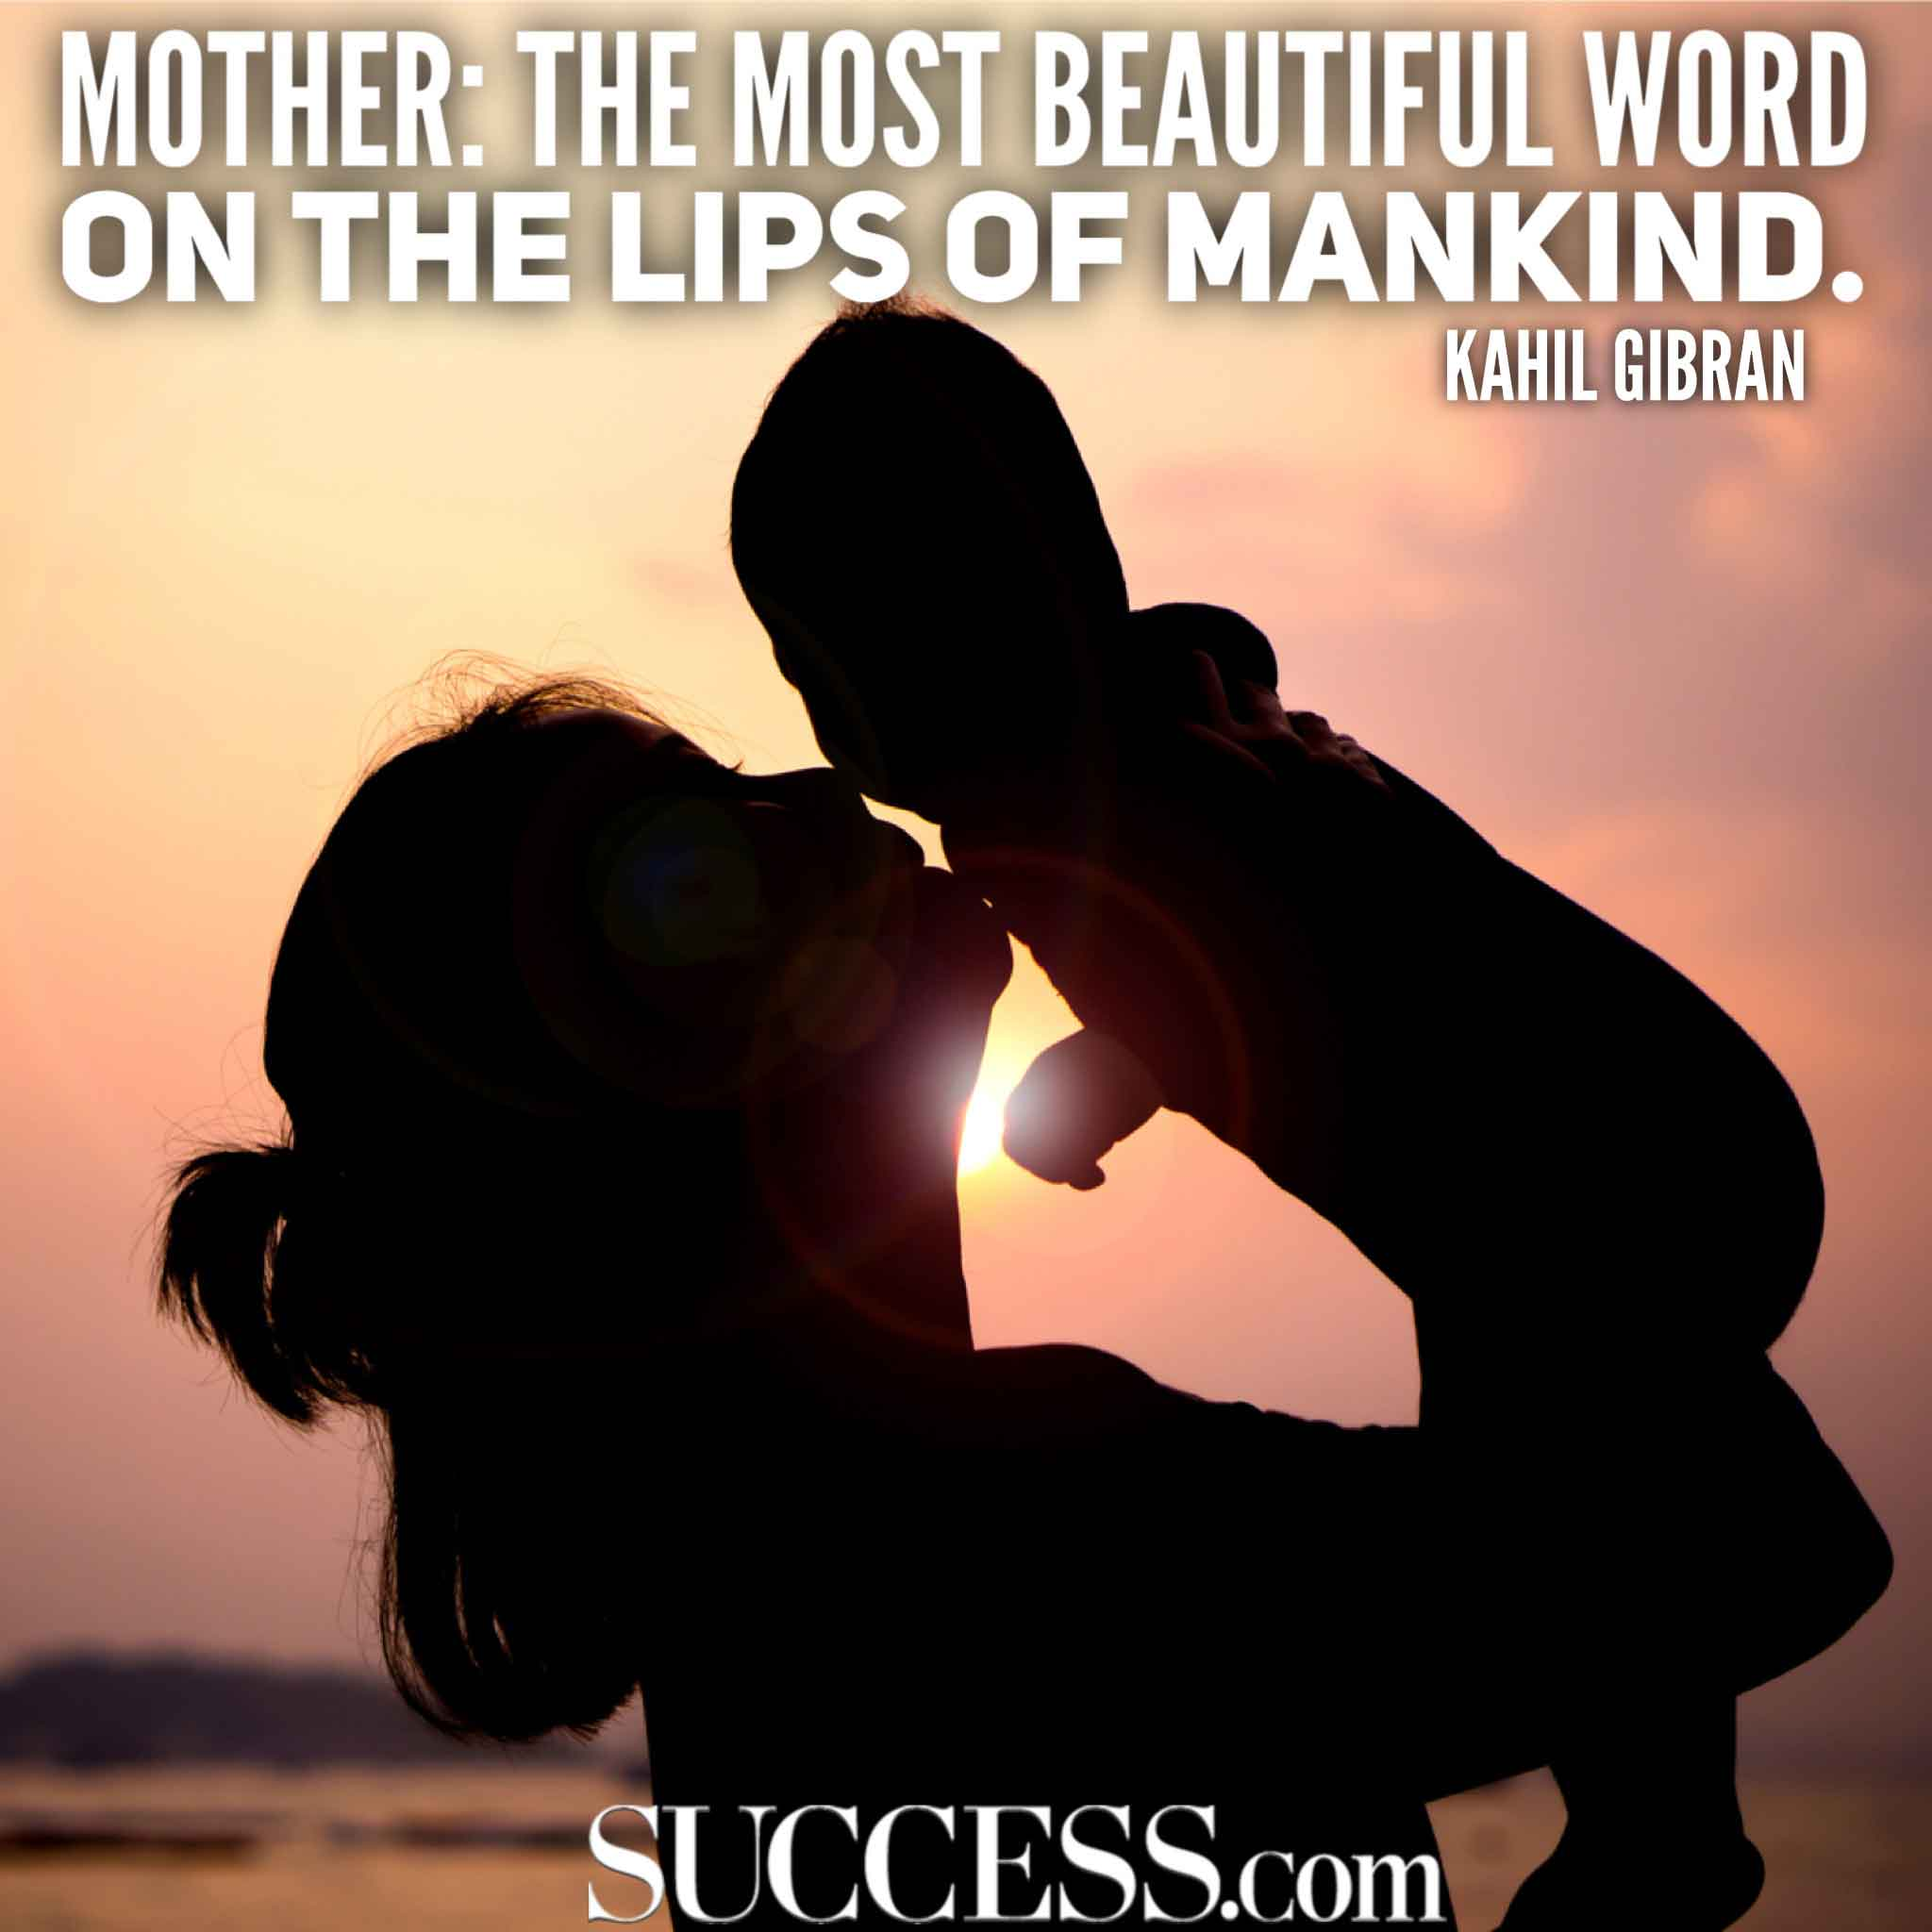 15 Loving Quotes About the Joys of Motherhood